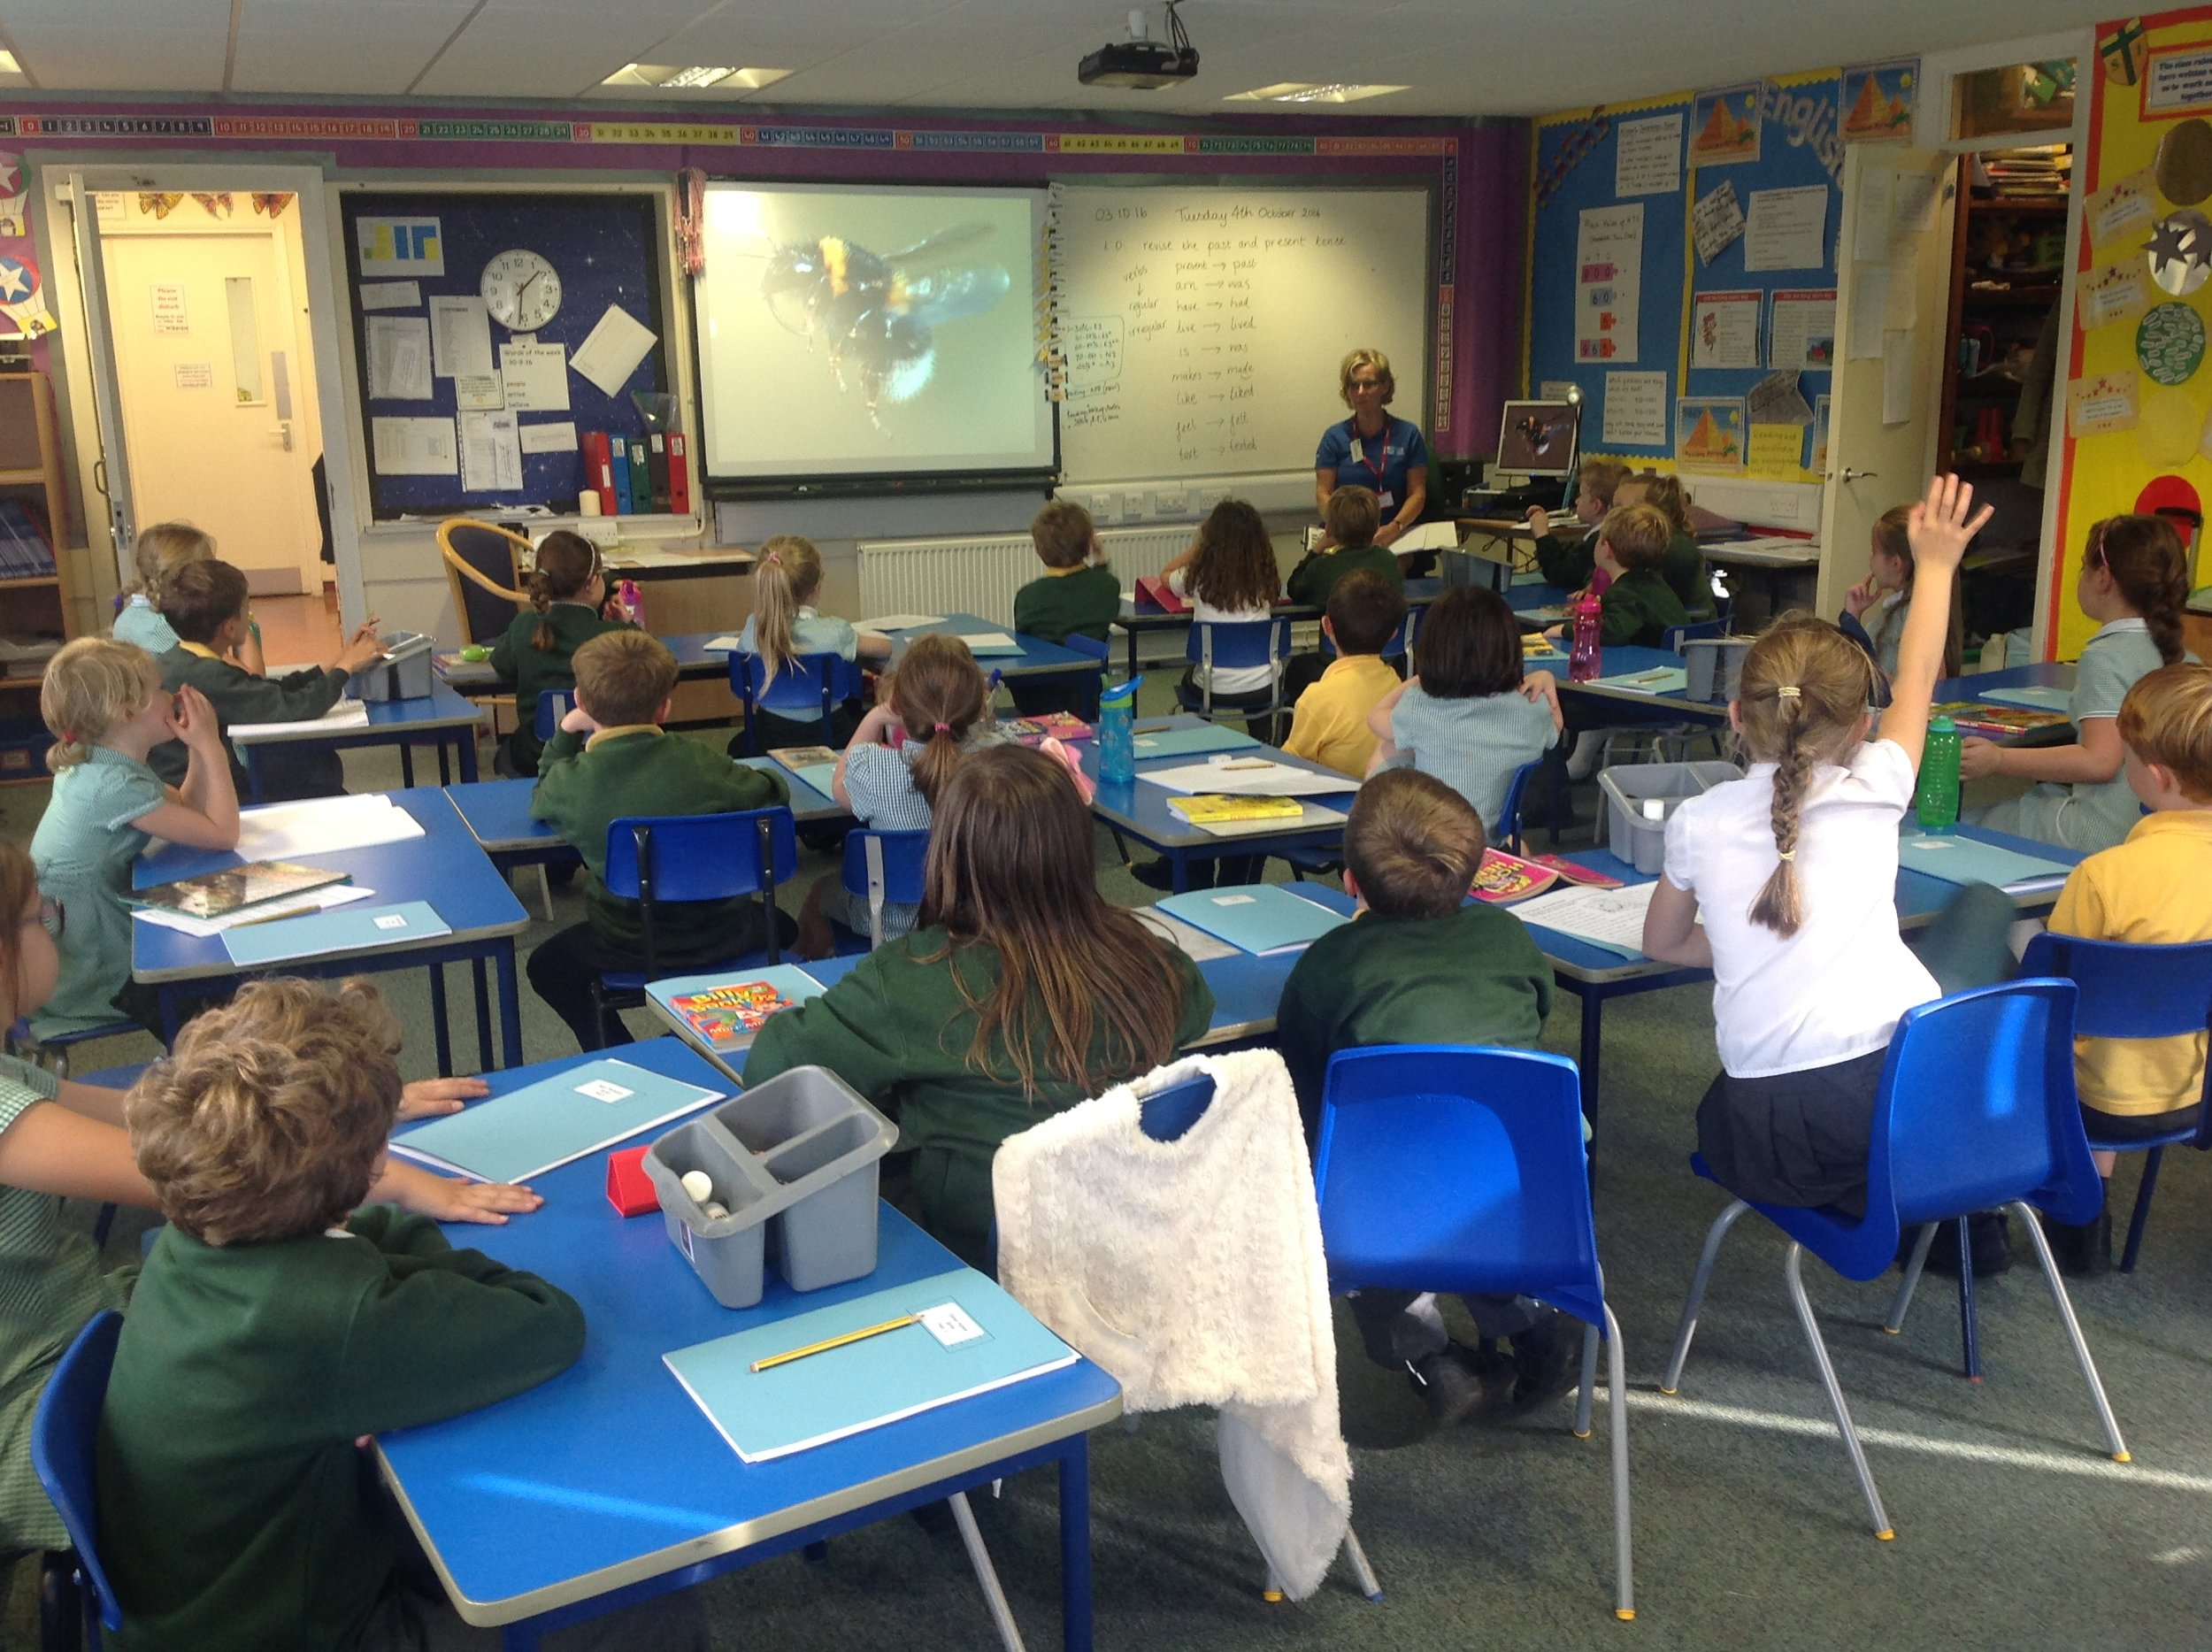 Listening to an introduction about wildlife and its habitats.